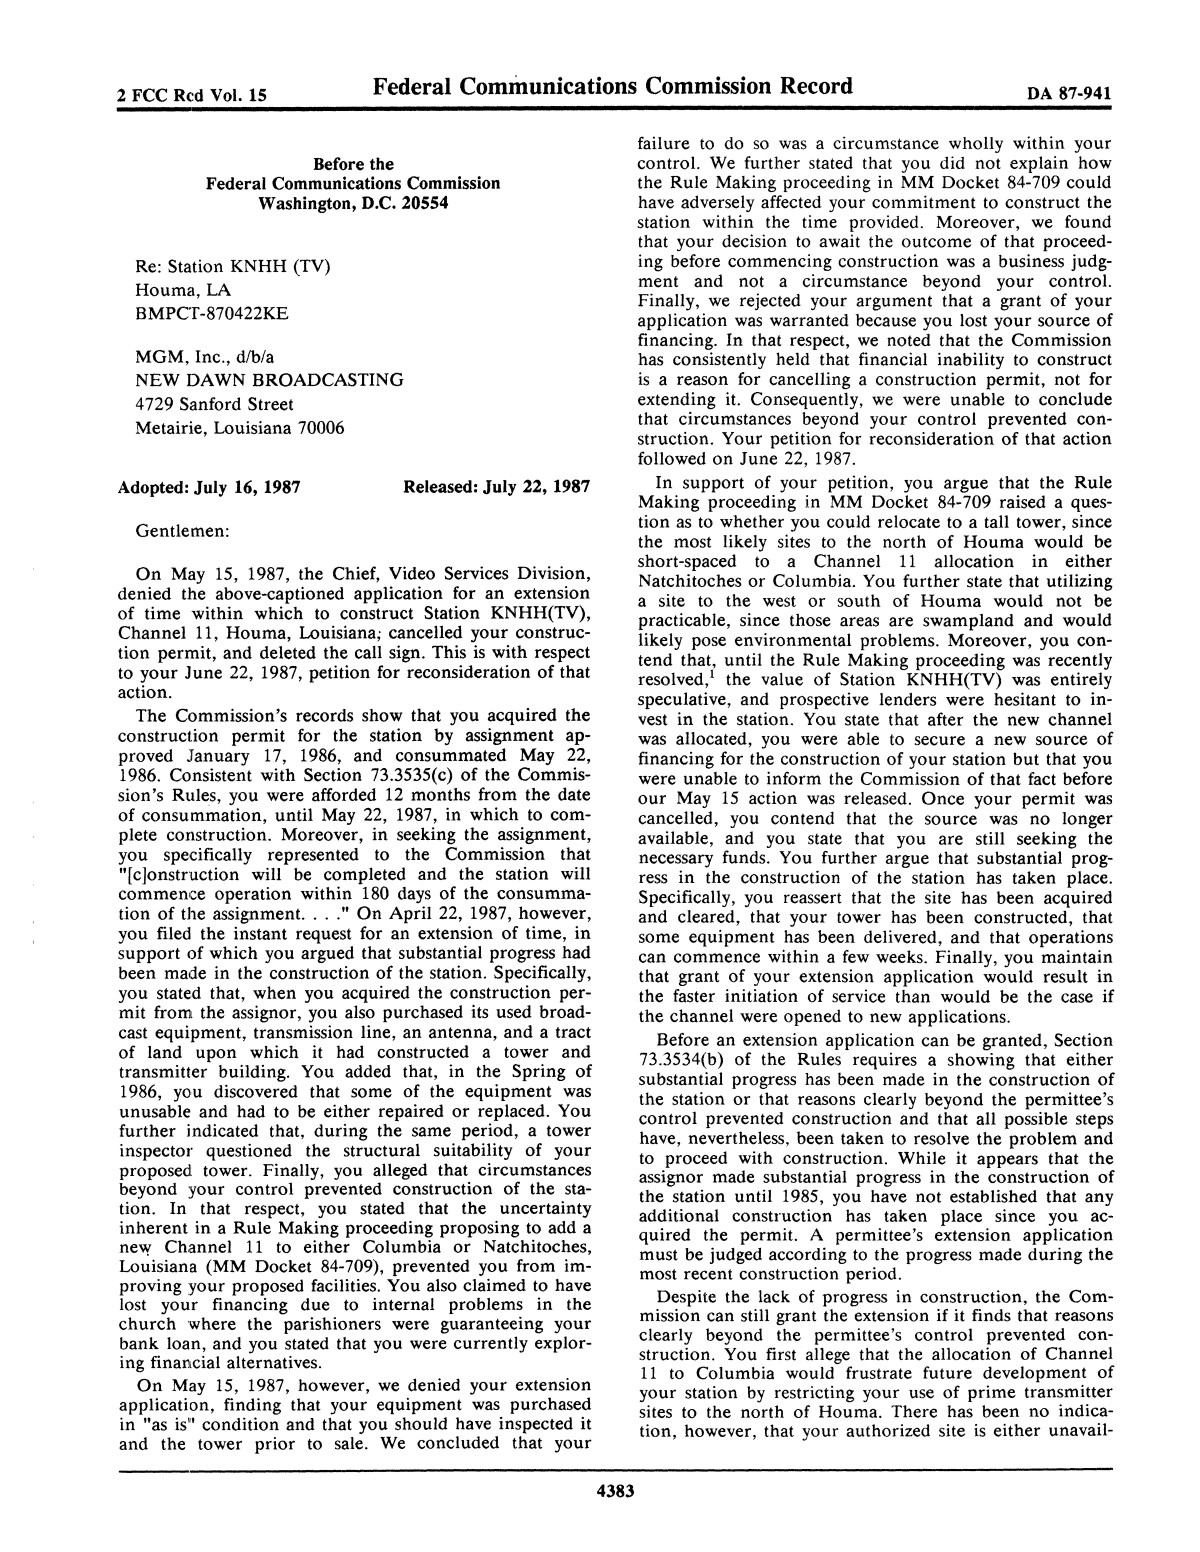 FCC Record, Volume 2, No. 15, Pages 4316 to 4529, July 20 - July 31, 1987                                                                                                      4383